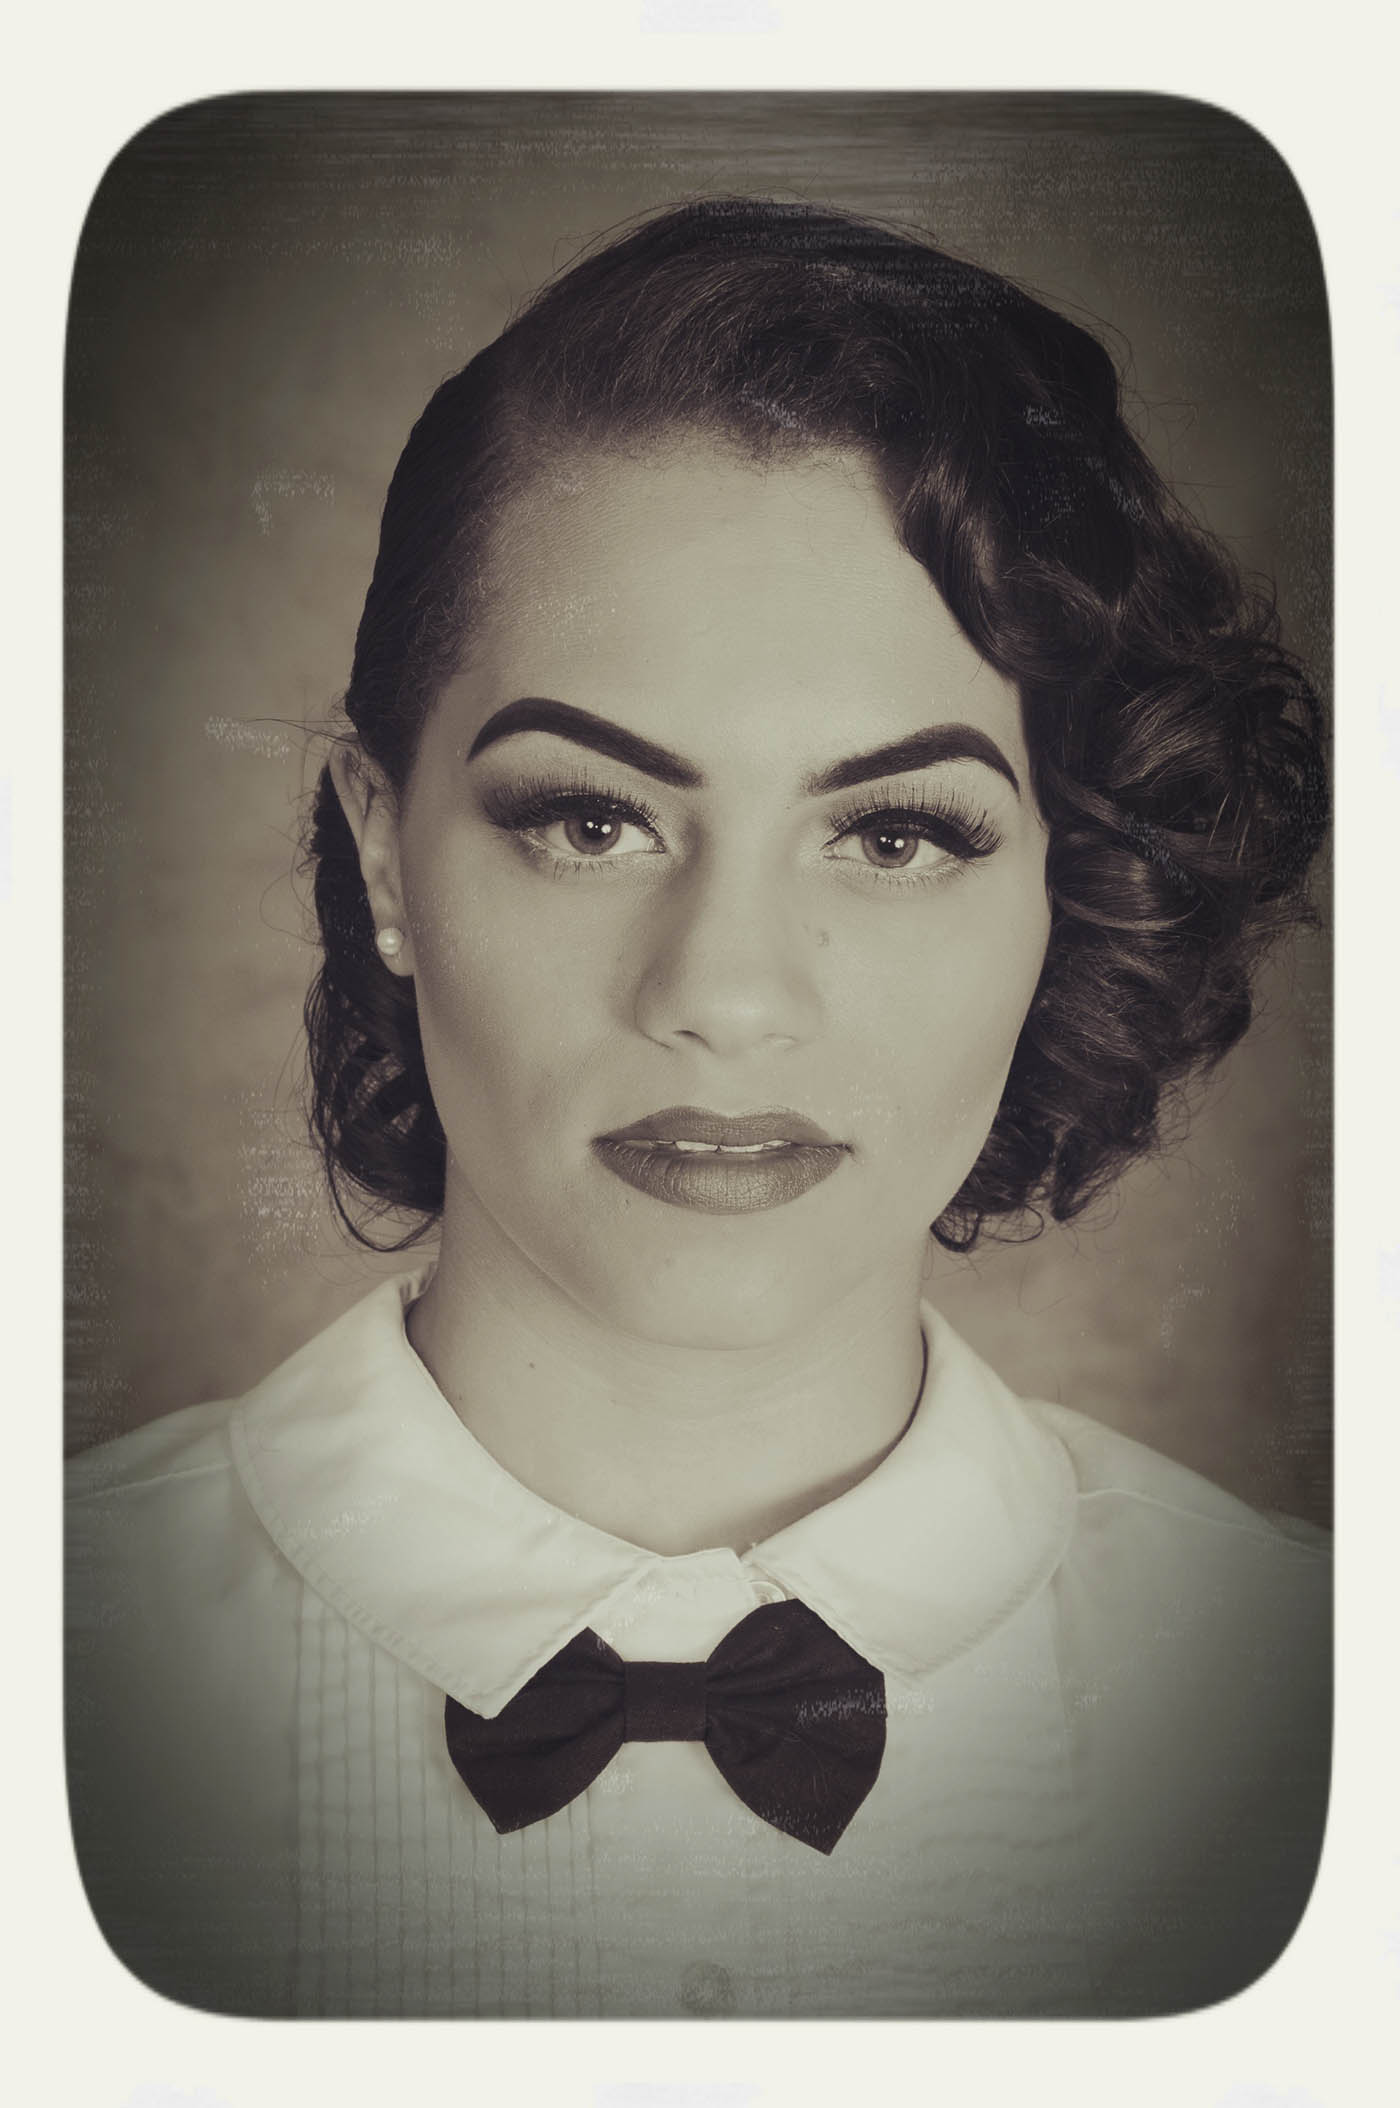 Vintage black and white photo, sepia toned